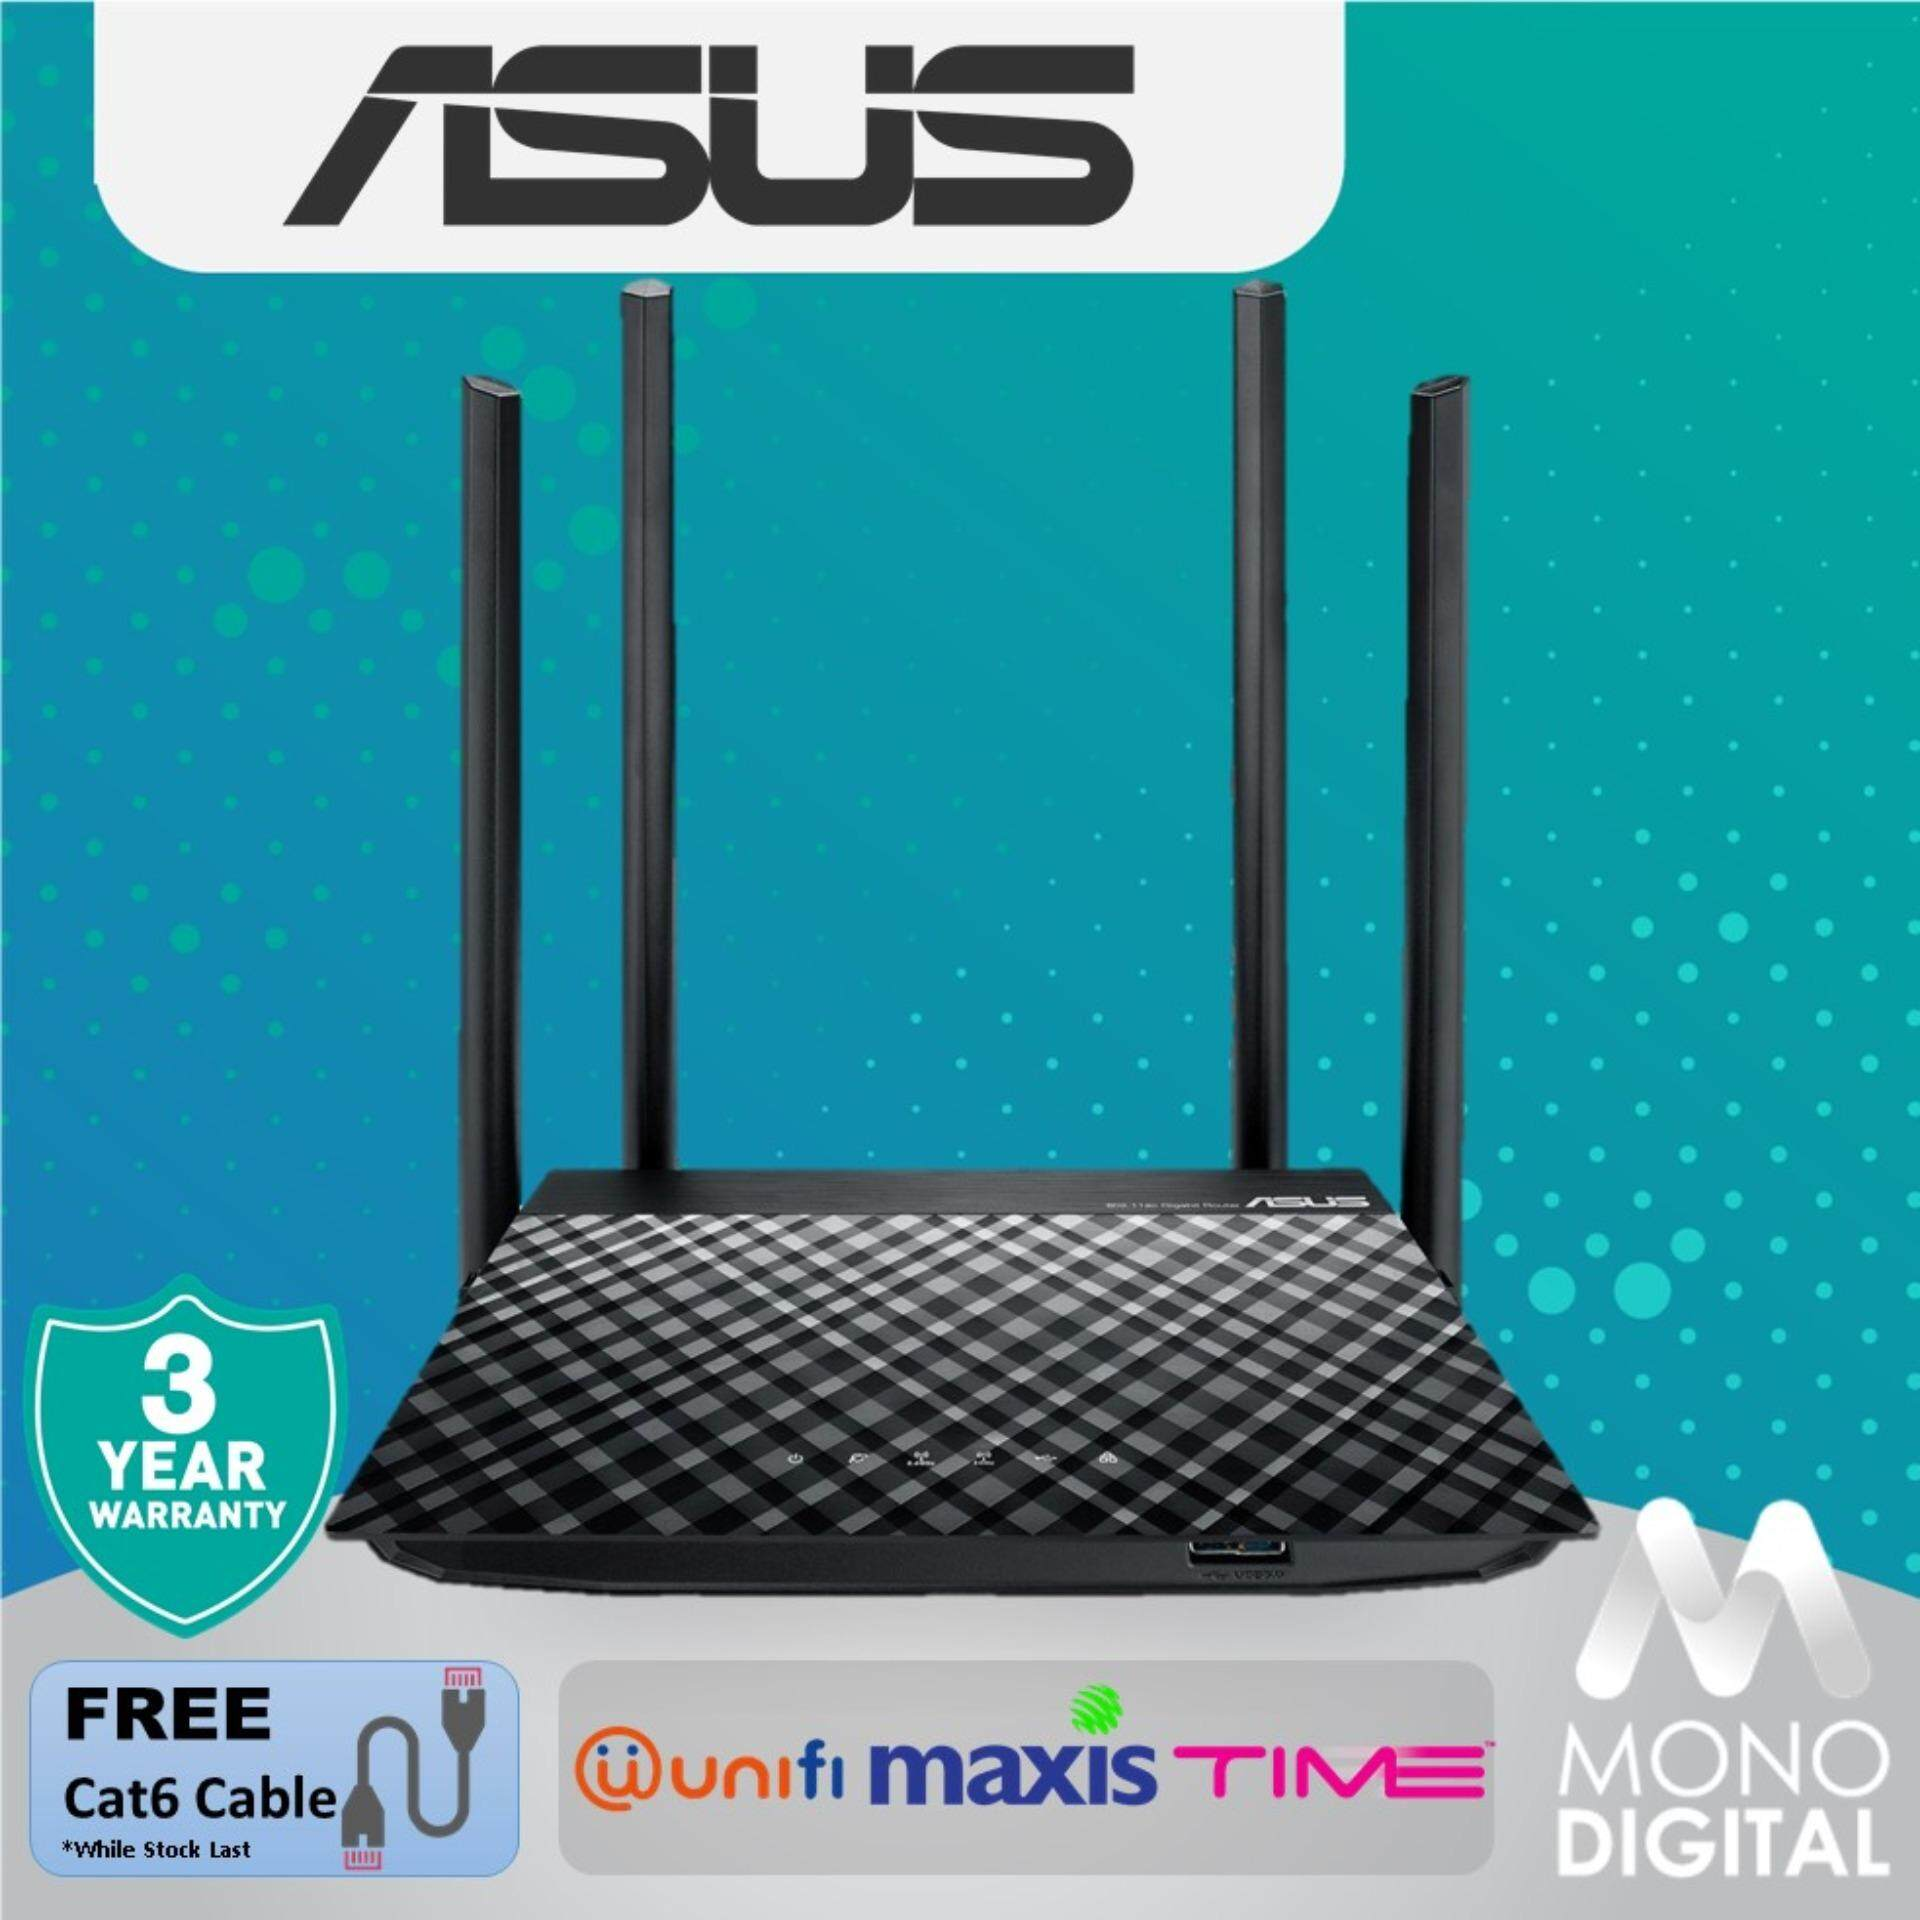 ASUS RT-AC1300UHP Wireless Dual Band Gigabit Router RT AC1300UHP WiFi  Router AC1300 For UNIFI/MAXIS/TIME Wireless Router (Free Cat6 Cable)